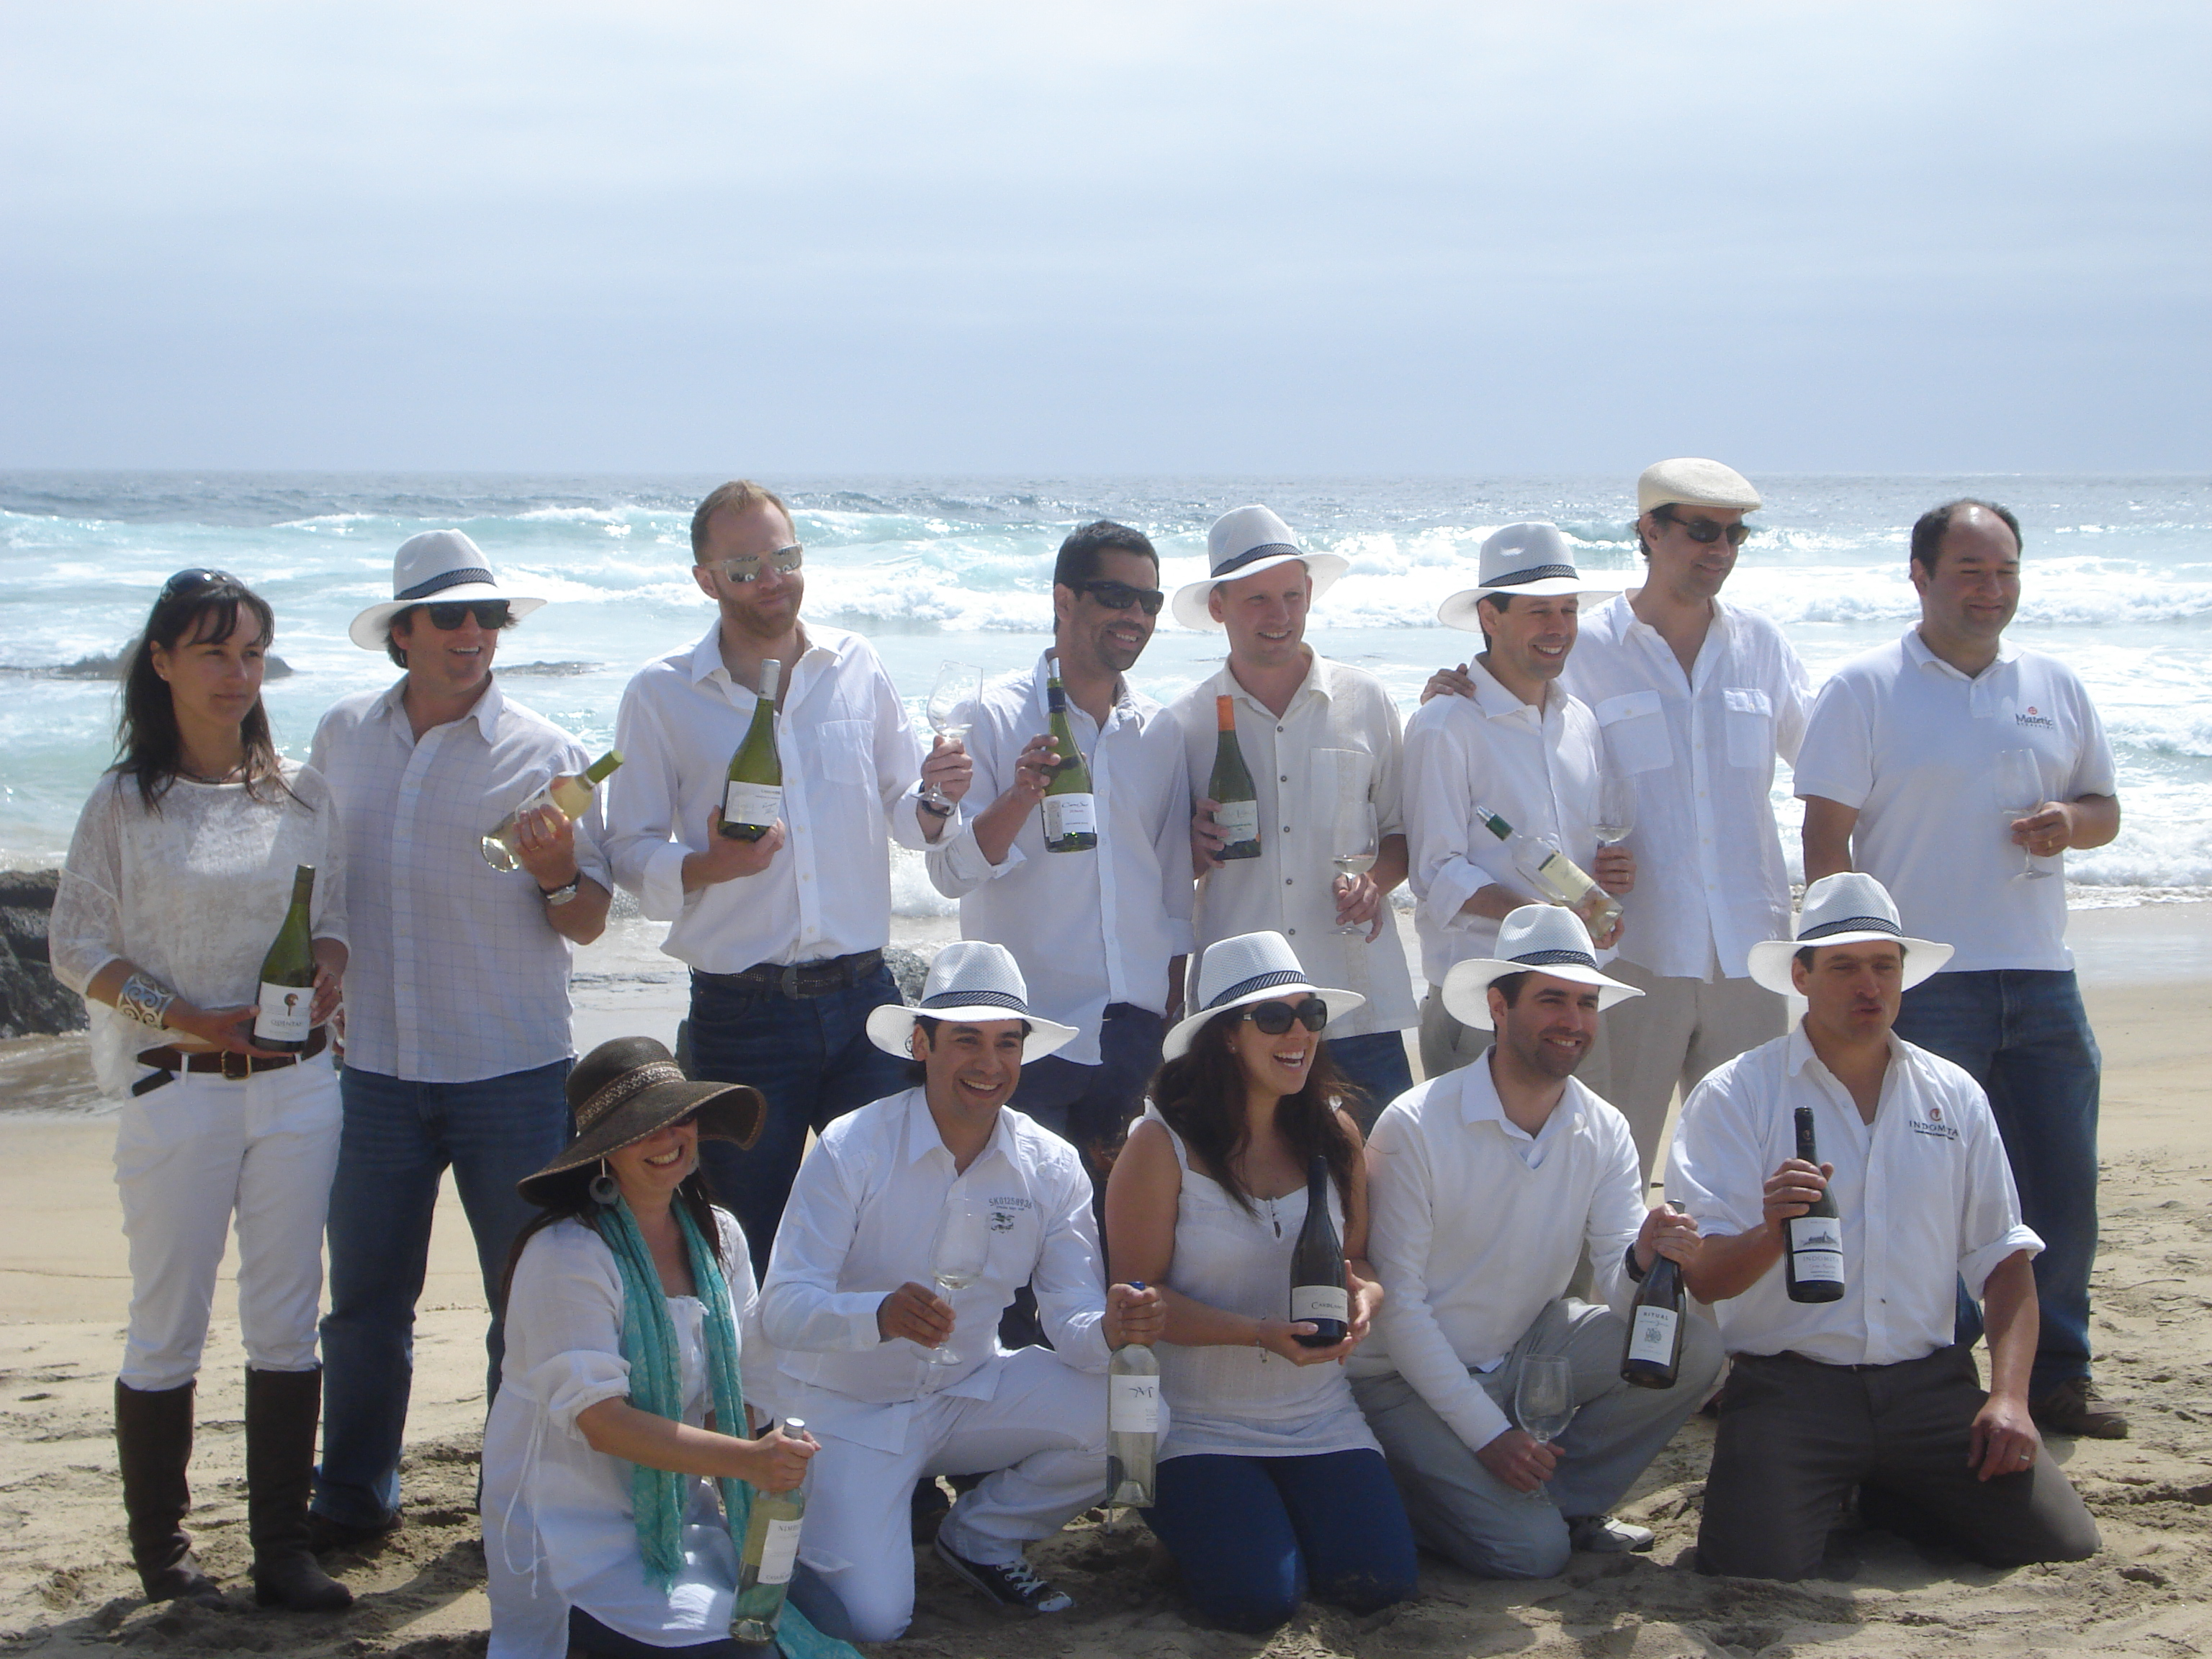 Alejandra, front middle, Kingston Family Vineyard's Assistant Winemaker joins other winemakers from Casablanca Valley.